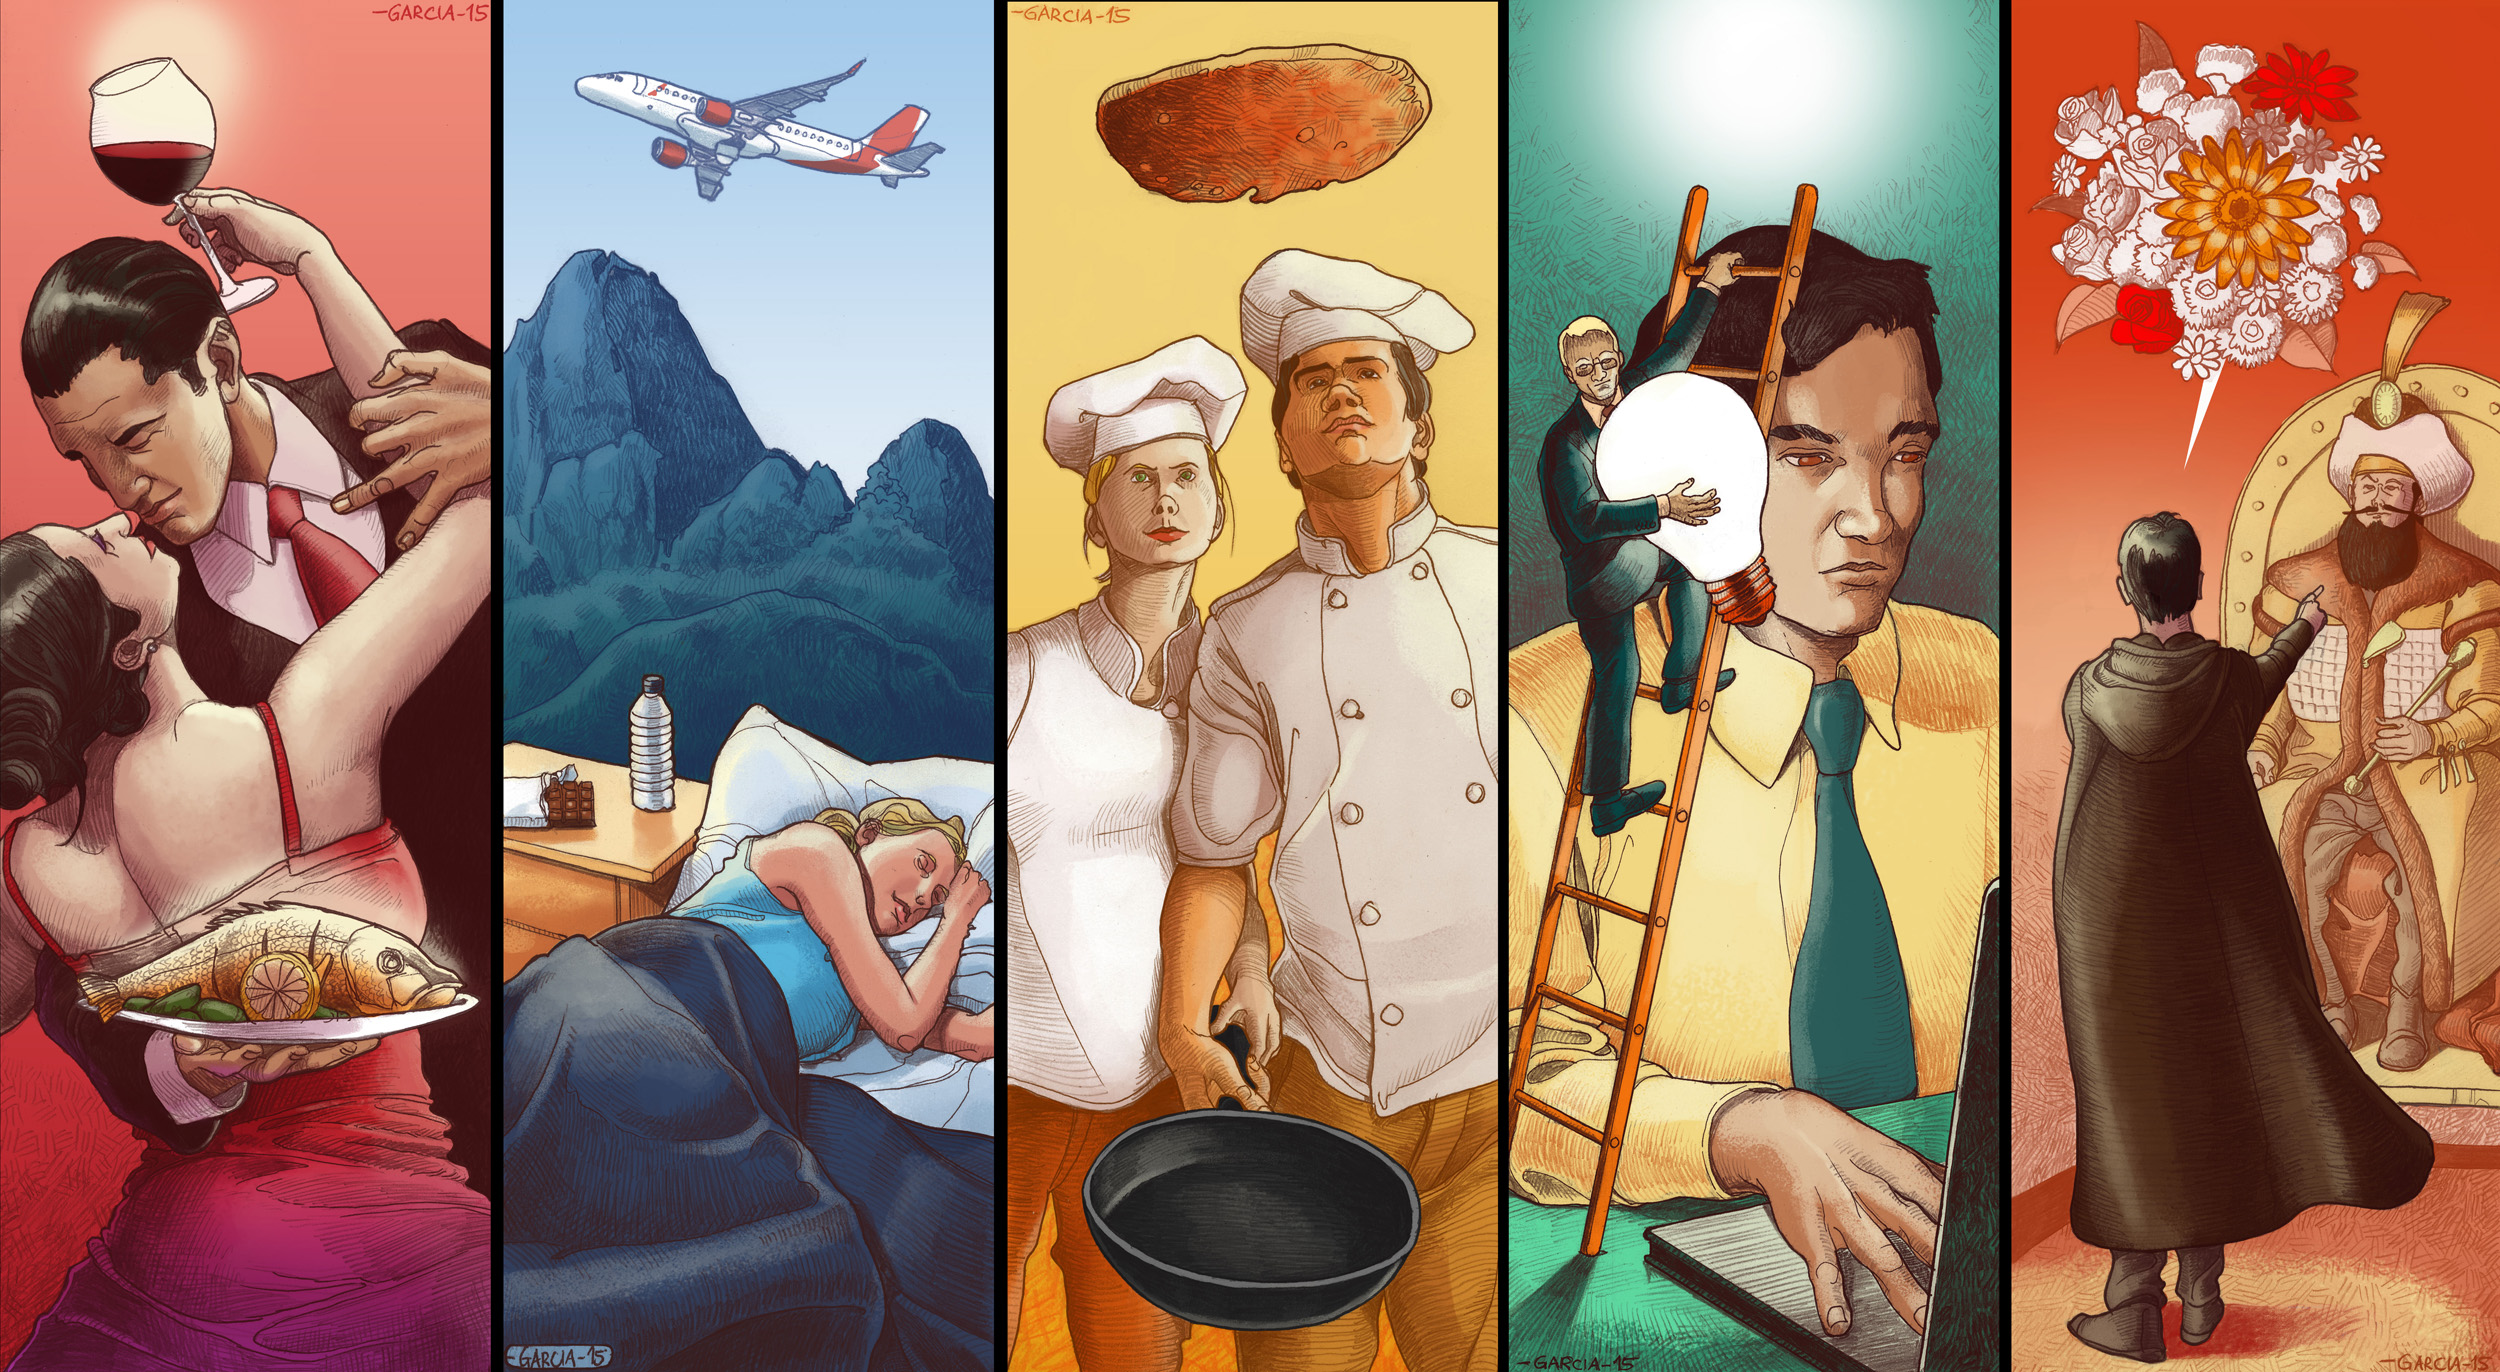 Daniel Garcia Art Illustration Avianca Cooking Wine Health Business 01